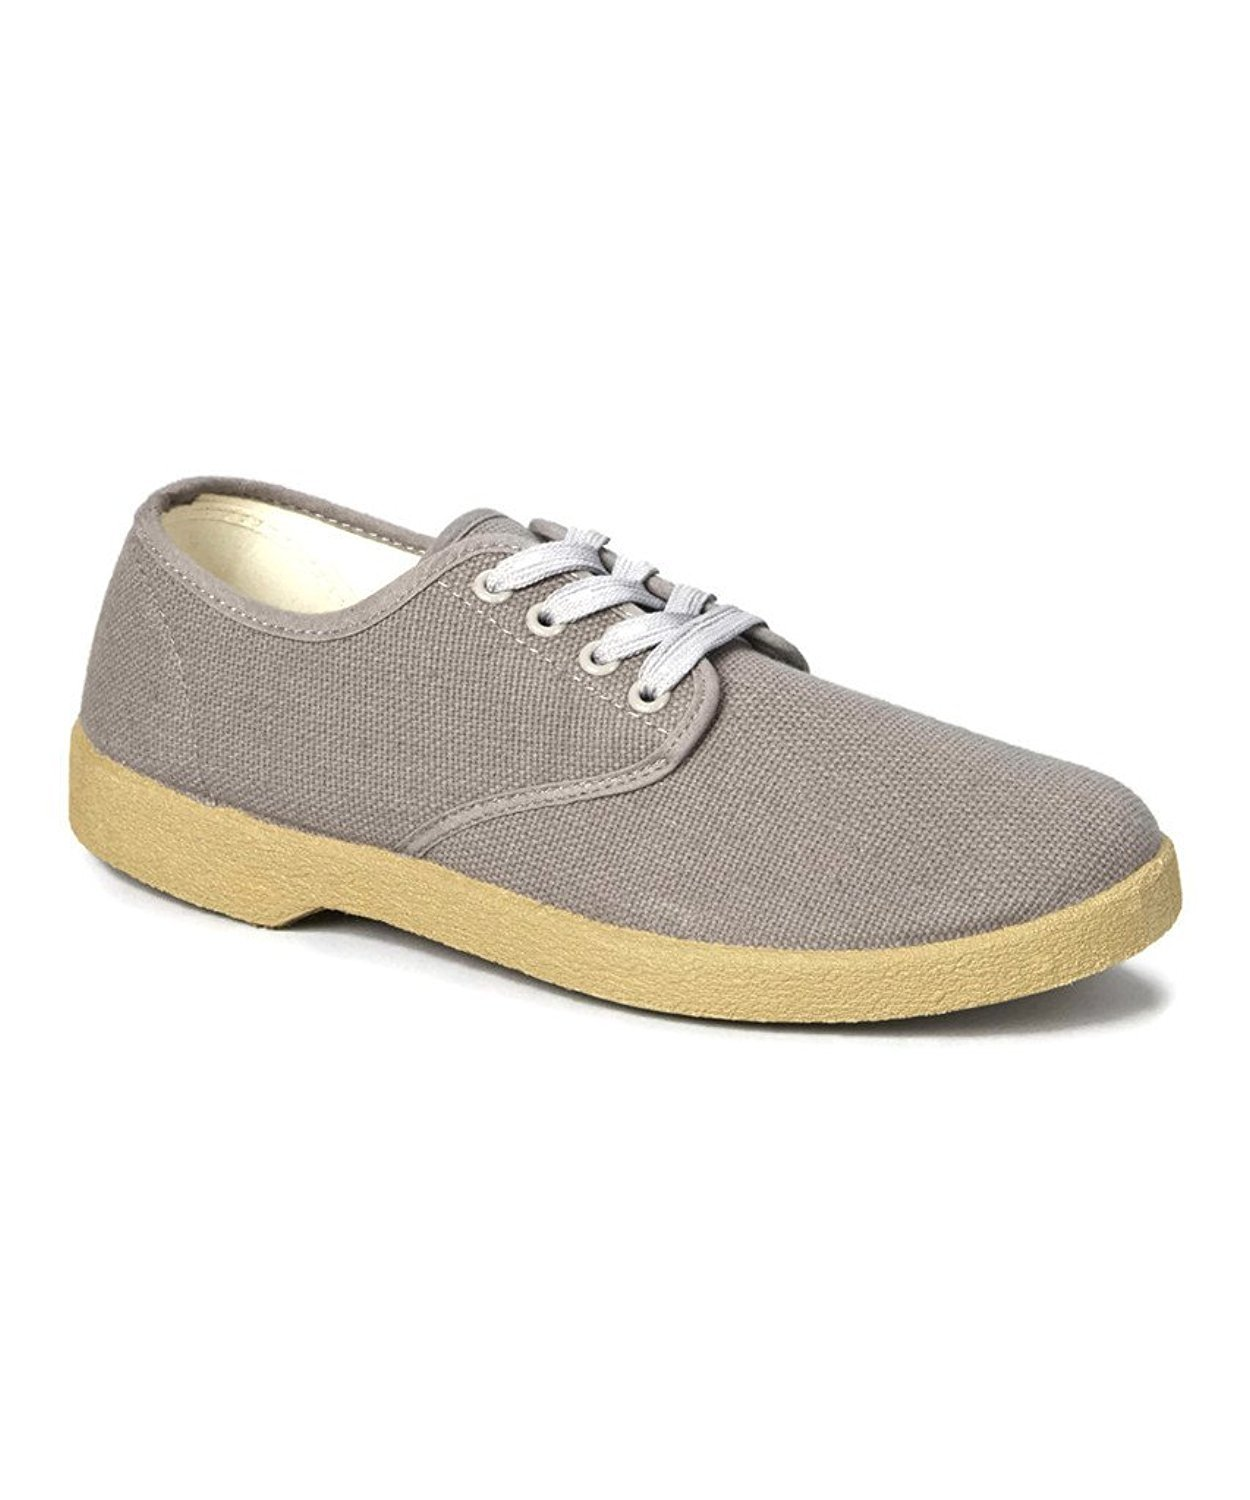 zig zag canvas oxford shoes beige winos sizes 6 5 13 new